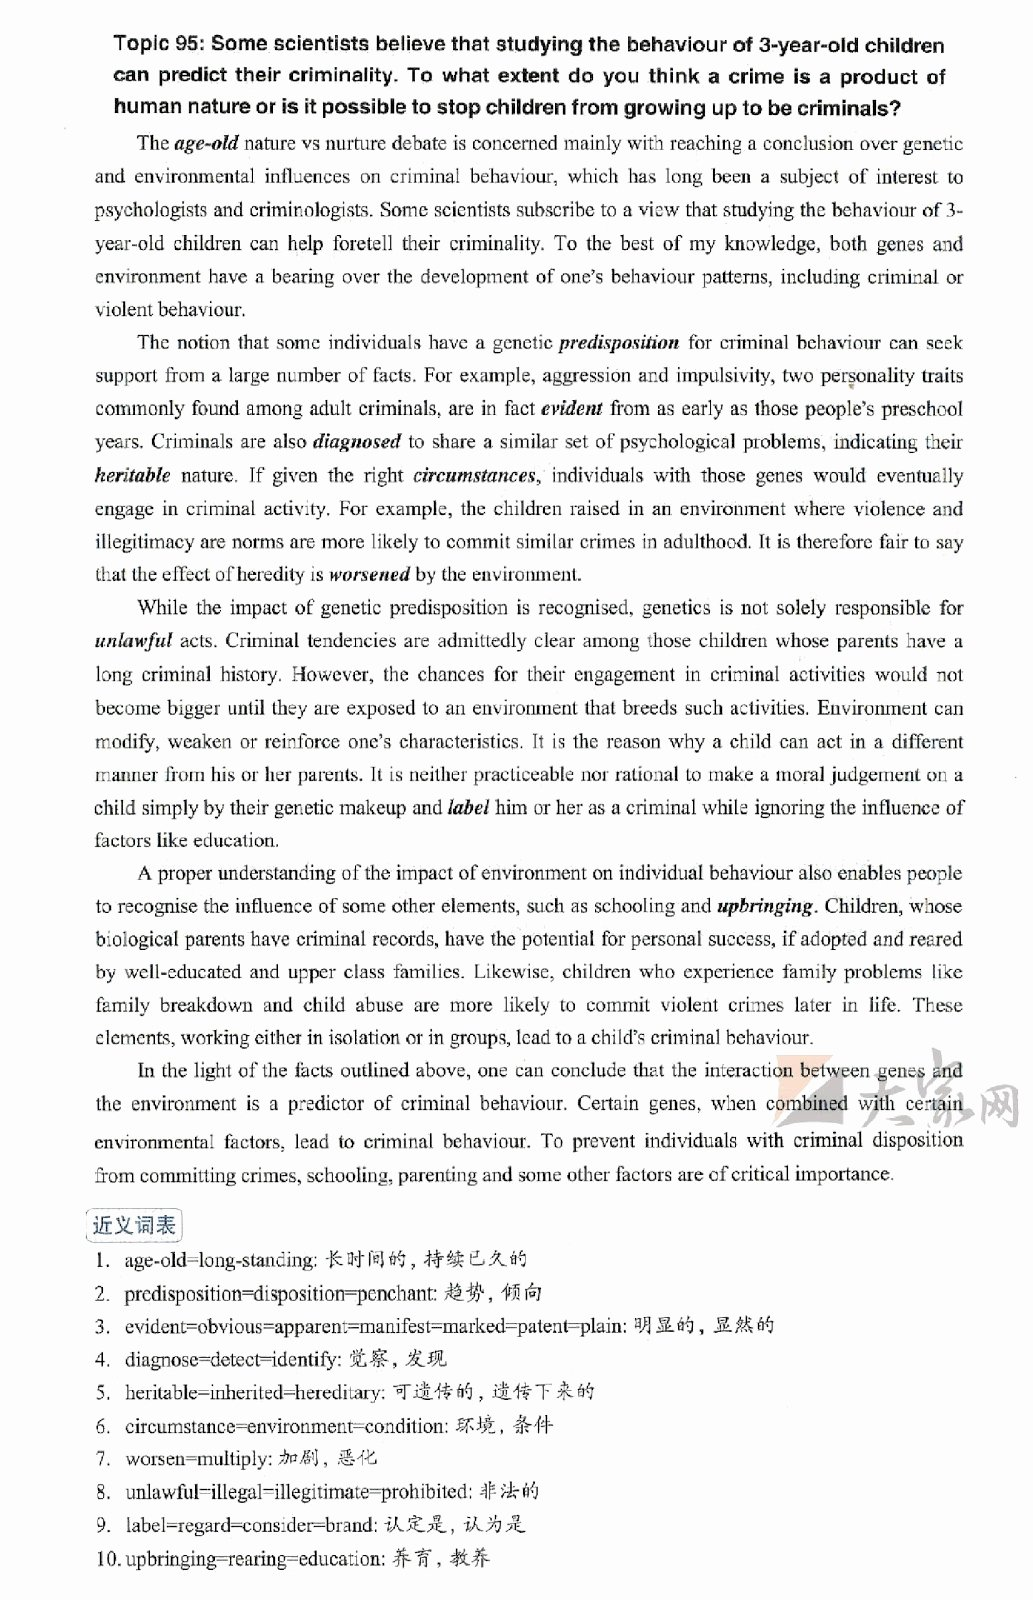 Current events Paper Outline Inspirational 53 event Essay topics 100 College Application Essay